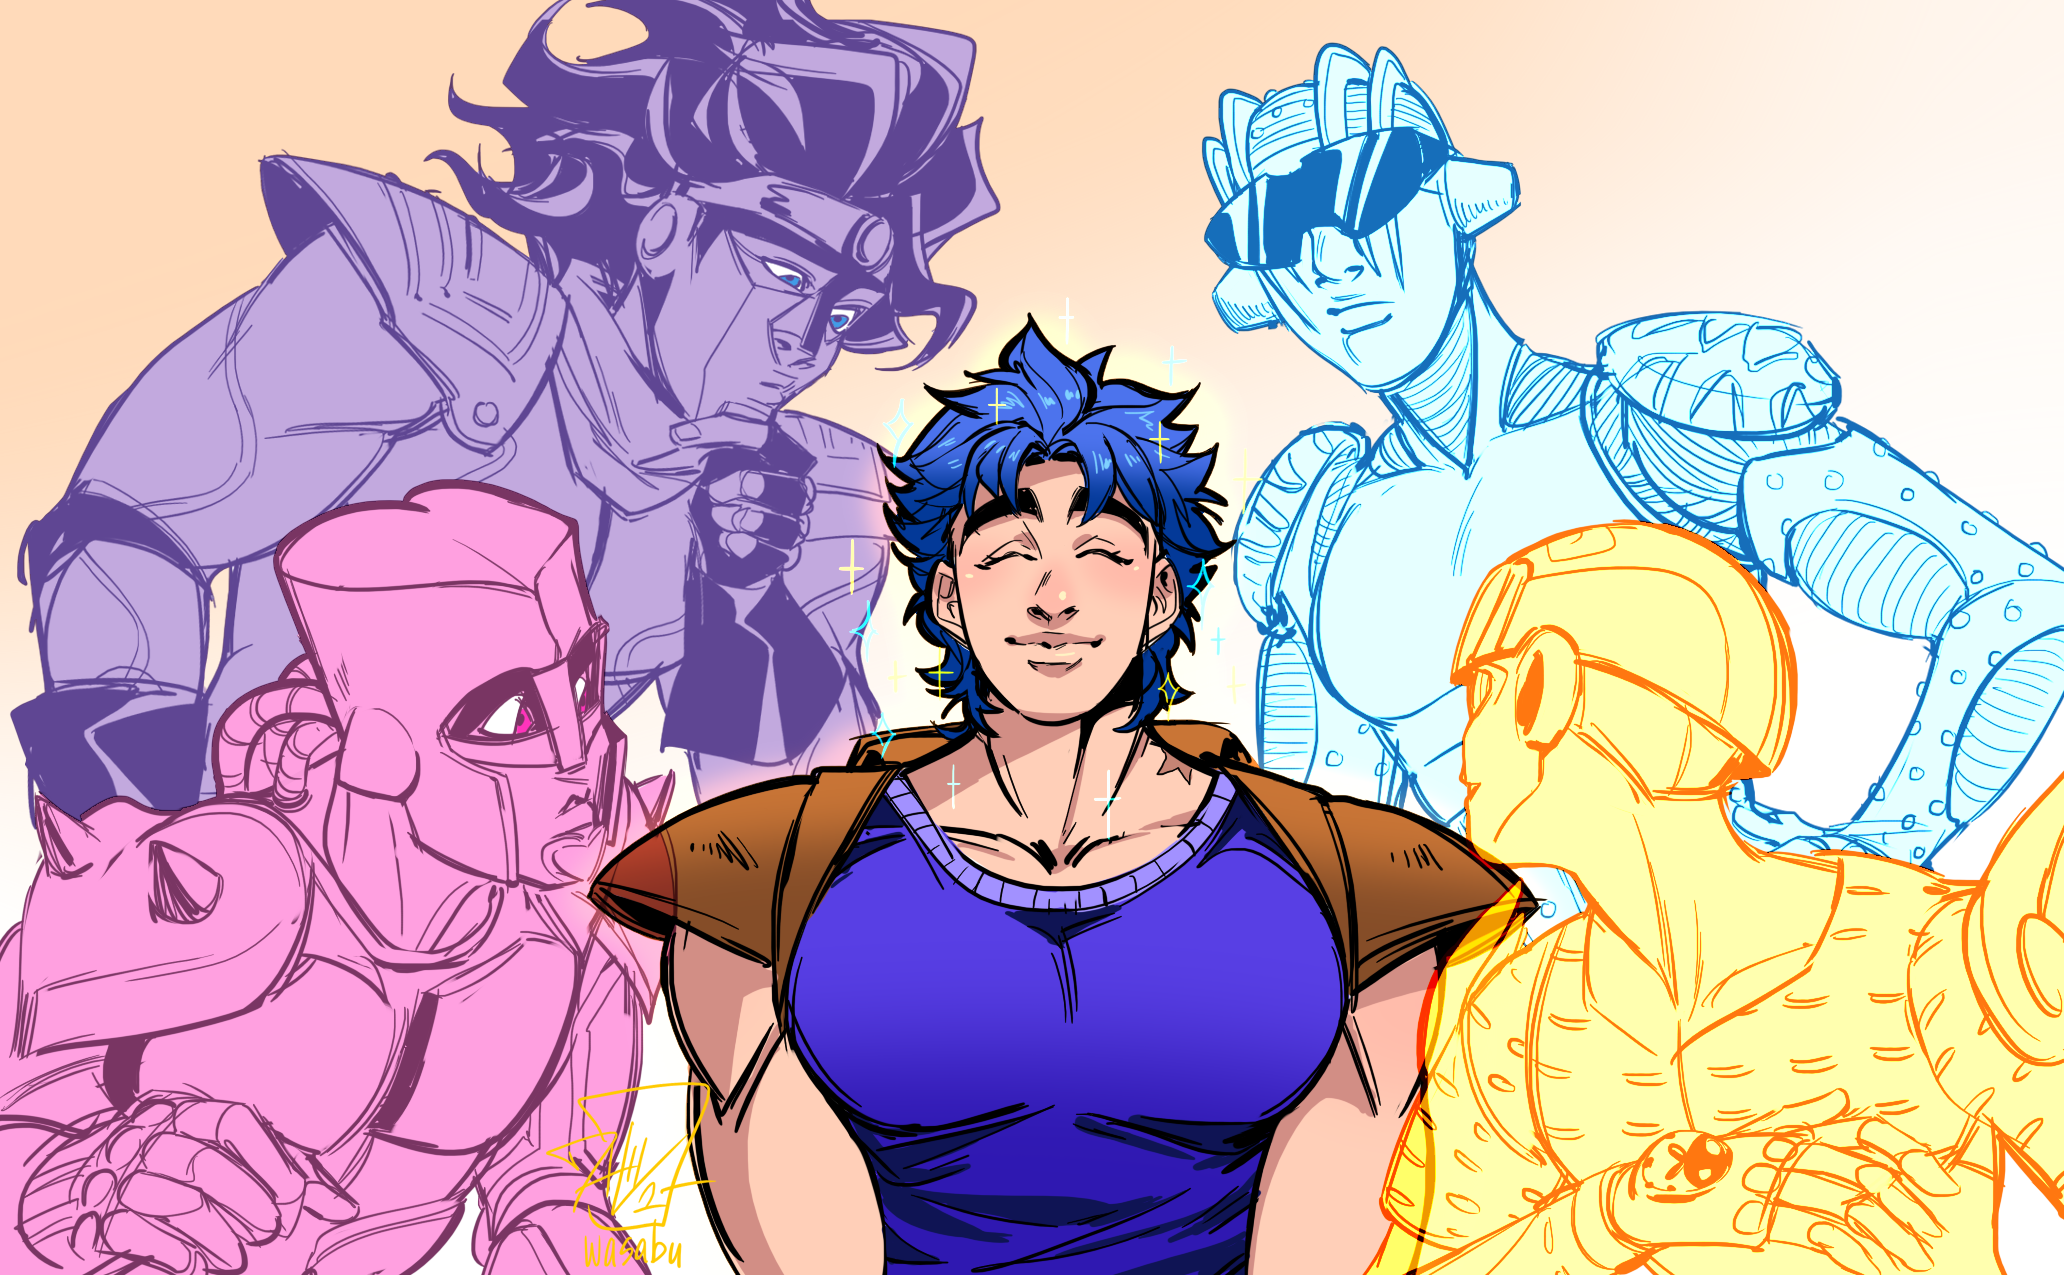 Jonathan Joestar Star Platinum Crazy Diamond Gold Experience And Stone Free Jojo No Kimyou Na Bouken And 5 More Drawn By Wasabu Danbooru Maybe there is a little too much prynce in this josuke (?) i tried to use a specific color palette inspired by coolors.co ,funny illustration besides the final version i also show you the one without colors. jonathan joestar star platinum crazy